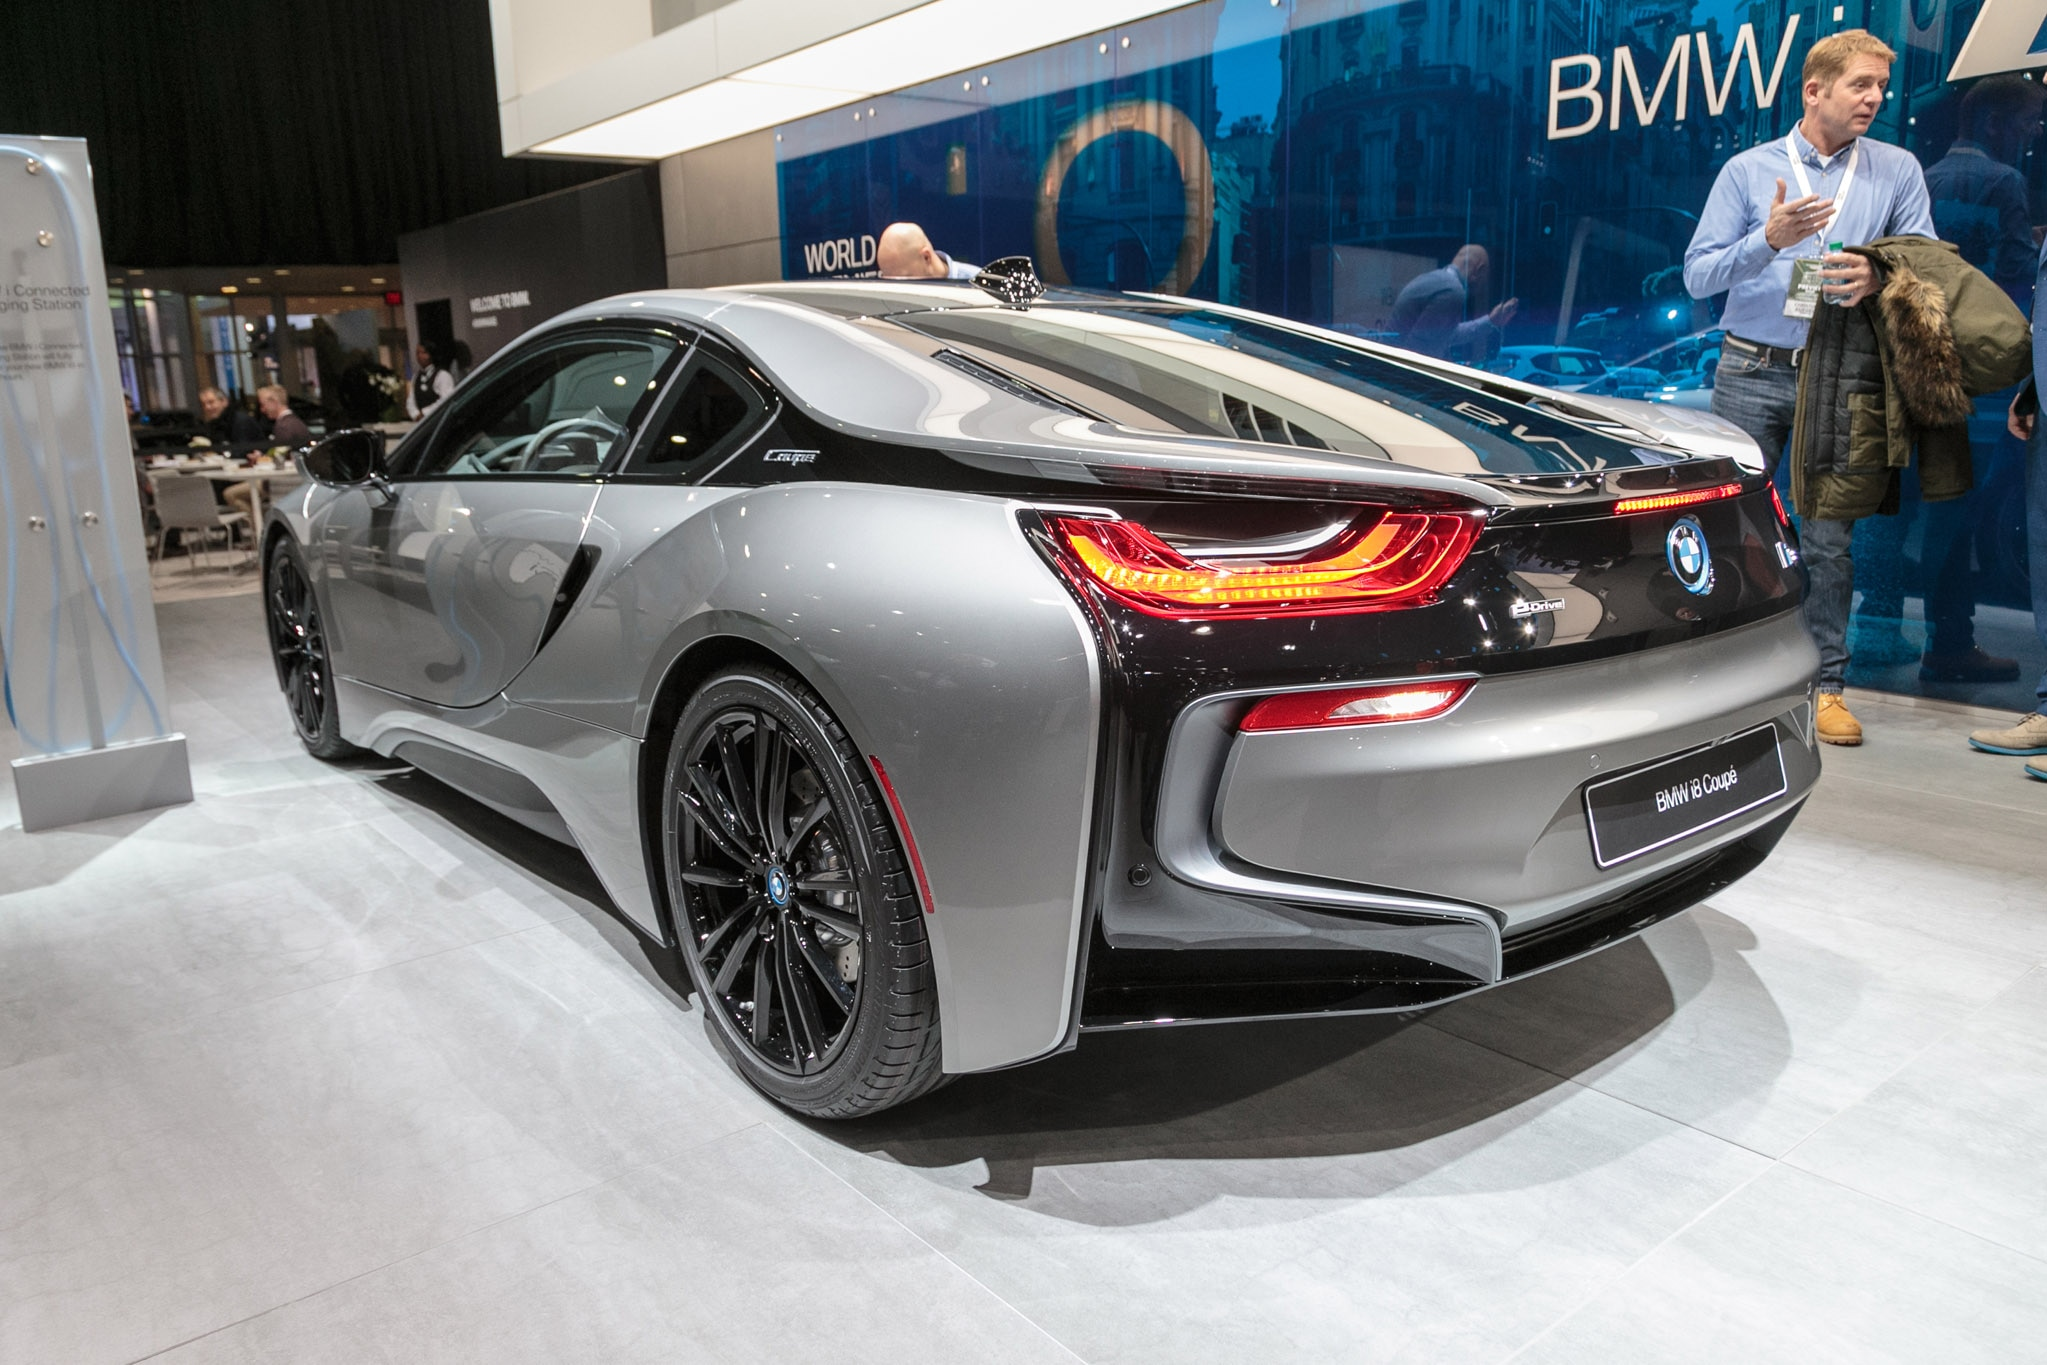 2019 Bmw I8 Coupe And Roadster First Edition Debut In